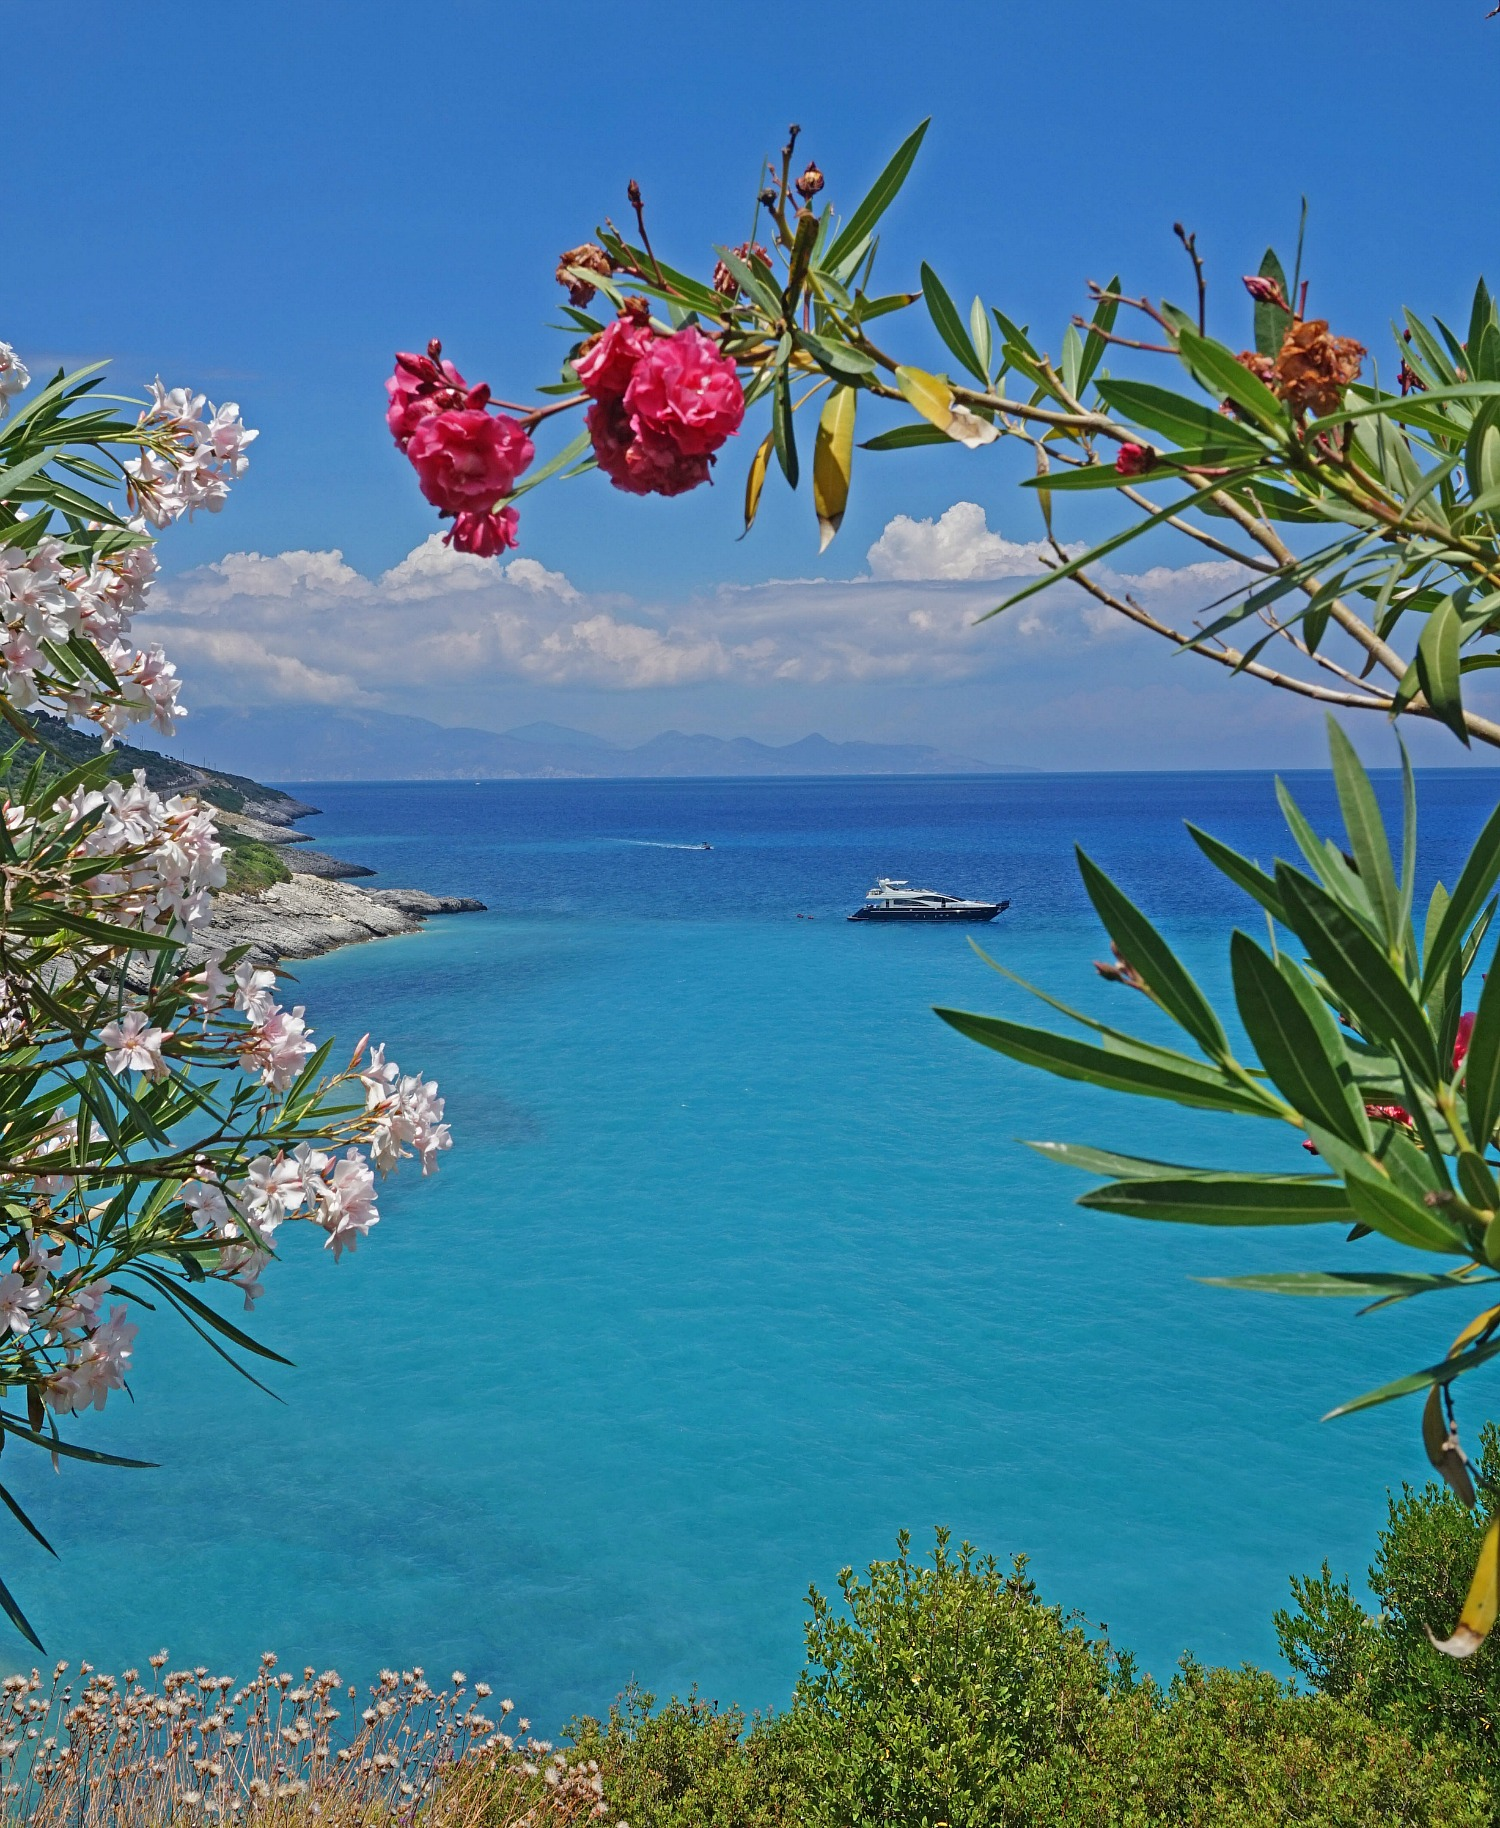 Zakynthos Greece - how to visit. View of the see through flowers.